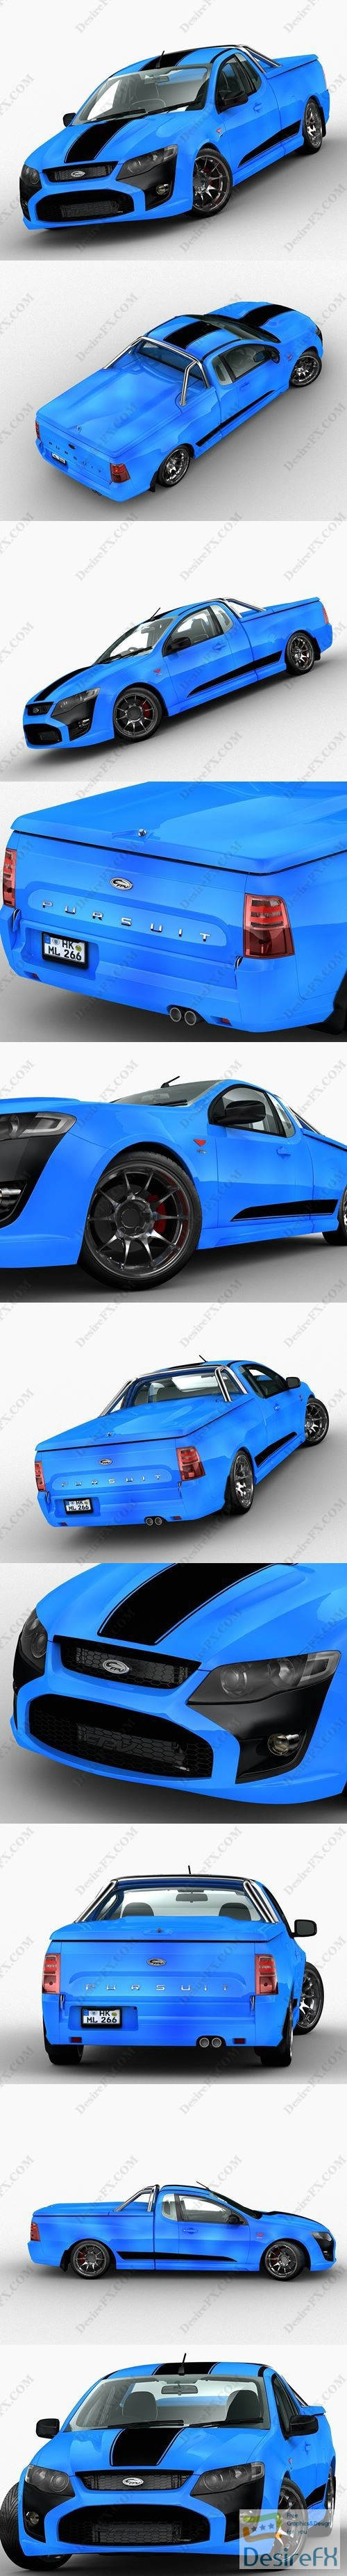 3d-models - Ford Pursuit FPV 2015 3D Model